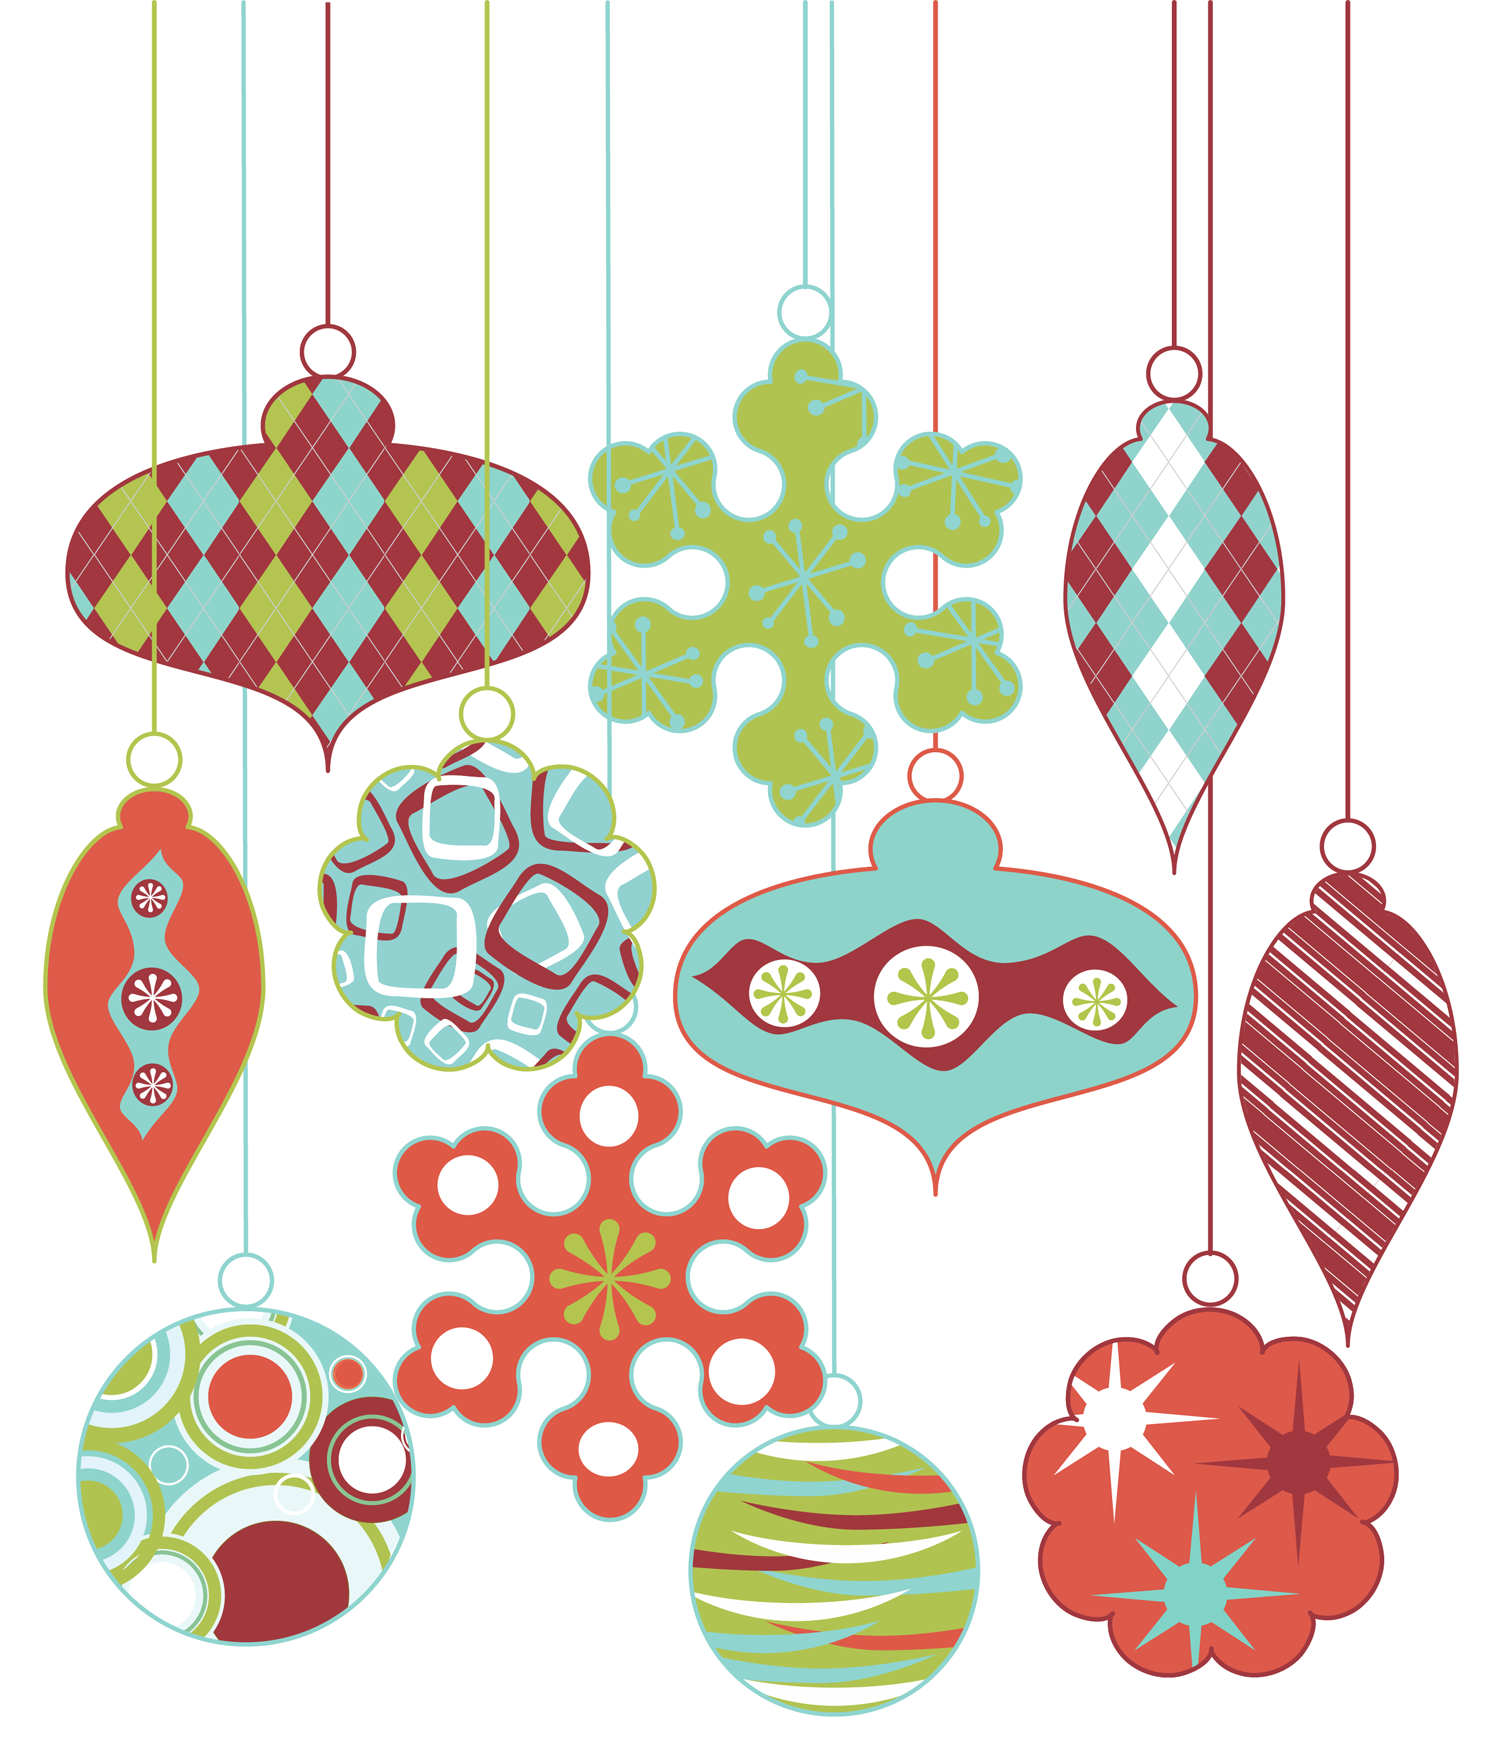 Retro Christmas Ornament Clipart Clip Art, Vintage Christmas.